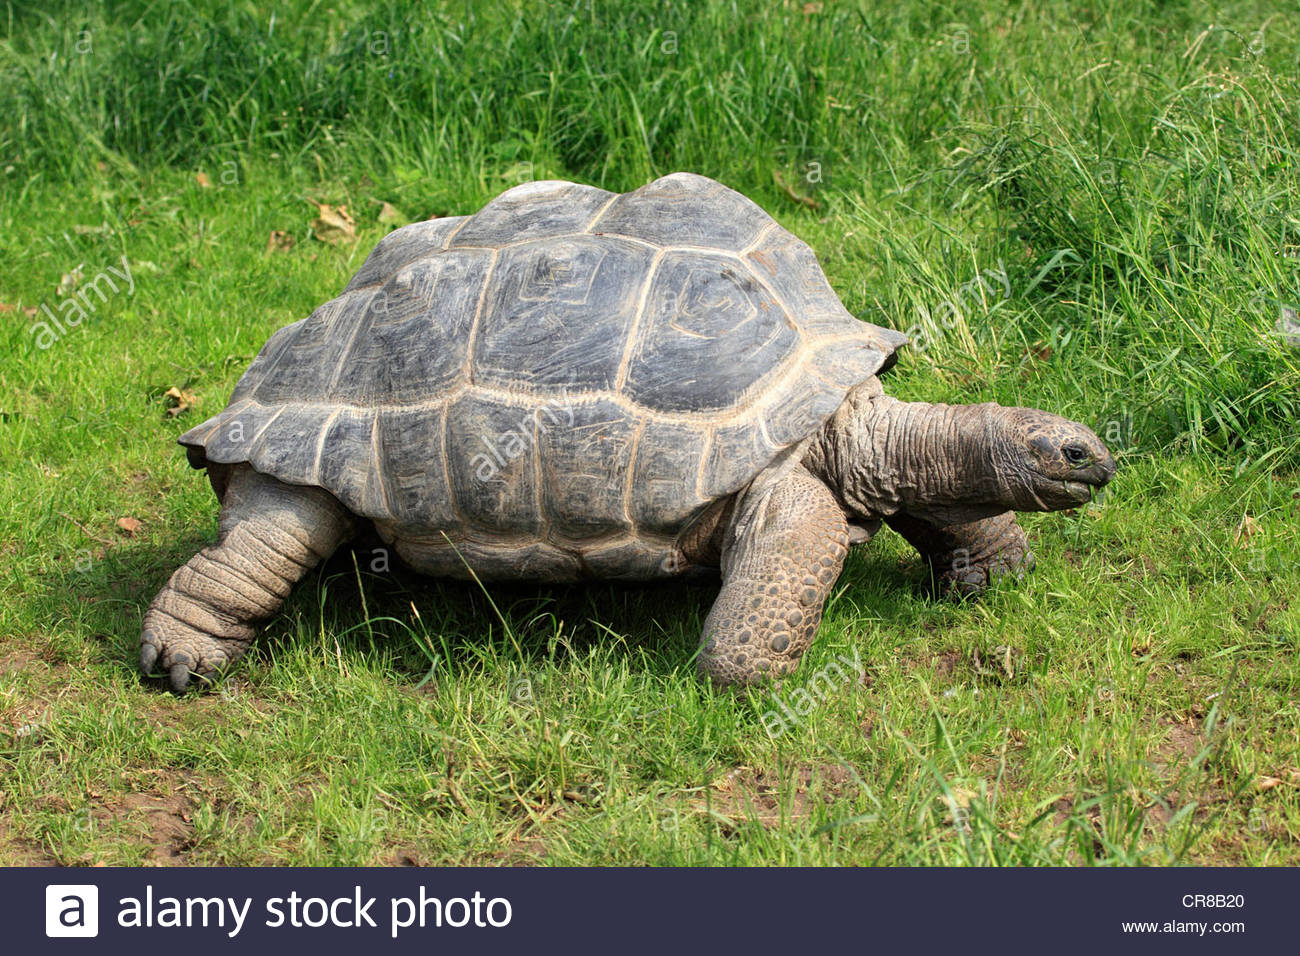 Aldabra Giant Tortoise clipart #3, Download drawings